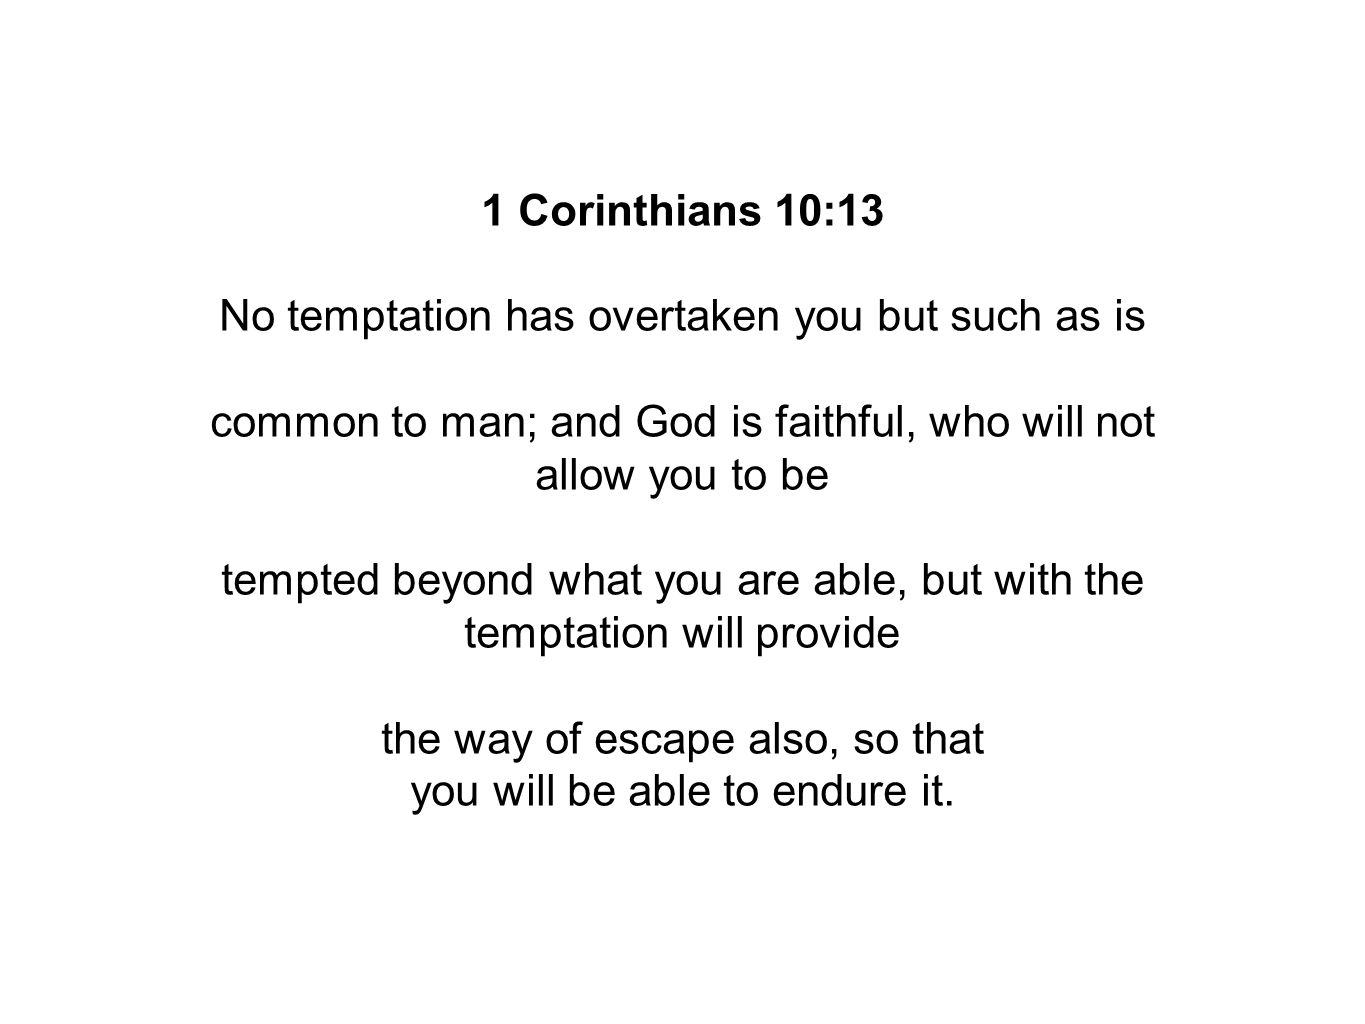 1 Corinthians 10:13 No temptation has overtaken you but such as is common to man; and God is faithful, who will not allow you to be tempted beyond what you are able, but with the temptation will provide the way of escape also, so that you will be able to endure it.